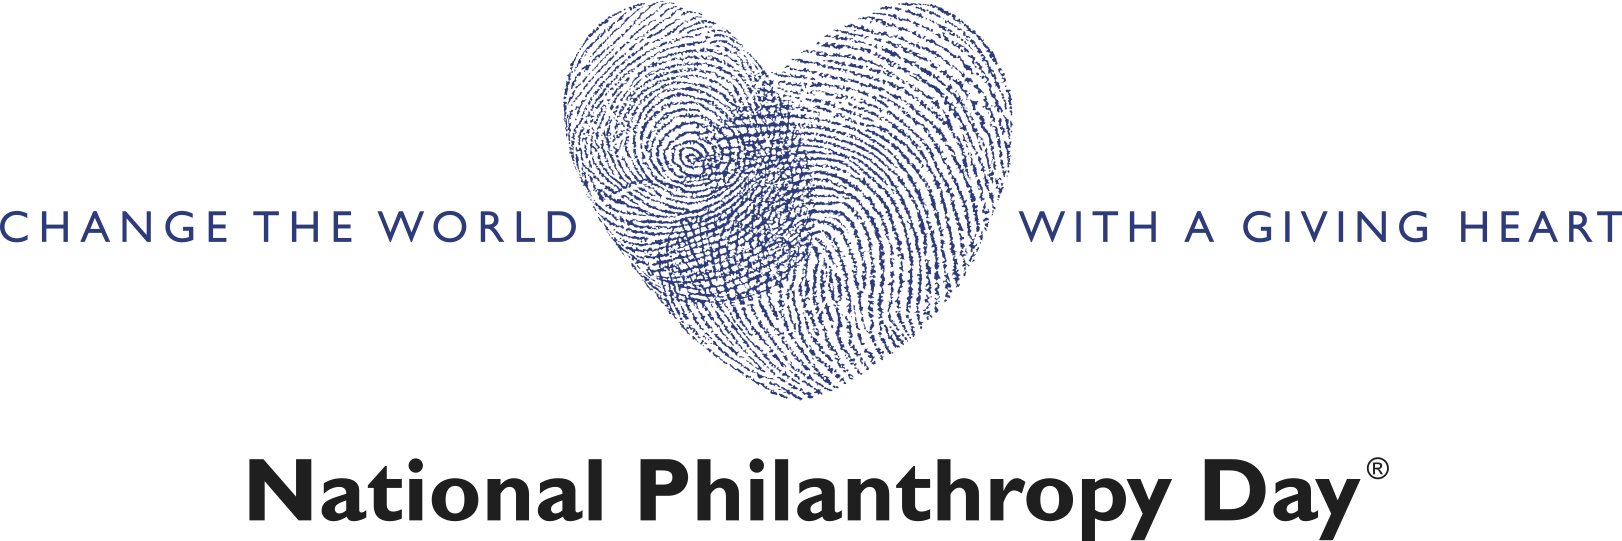 National Philanthropy Day | Association of Fundraising Professionals